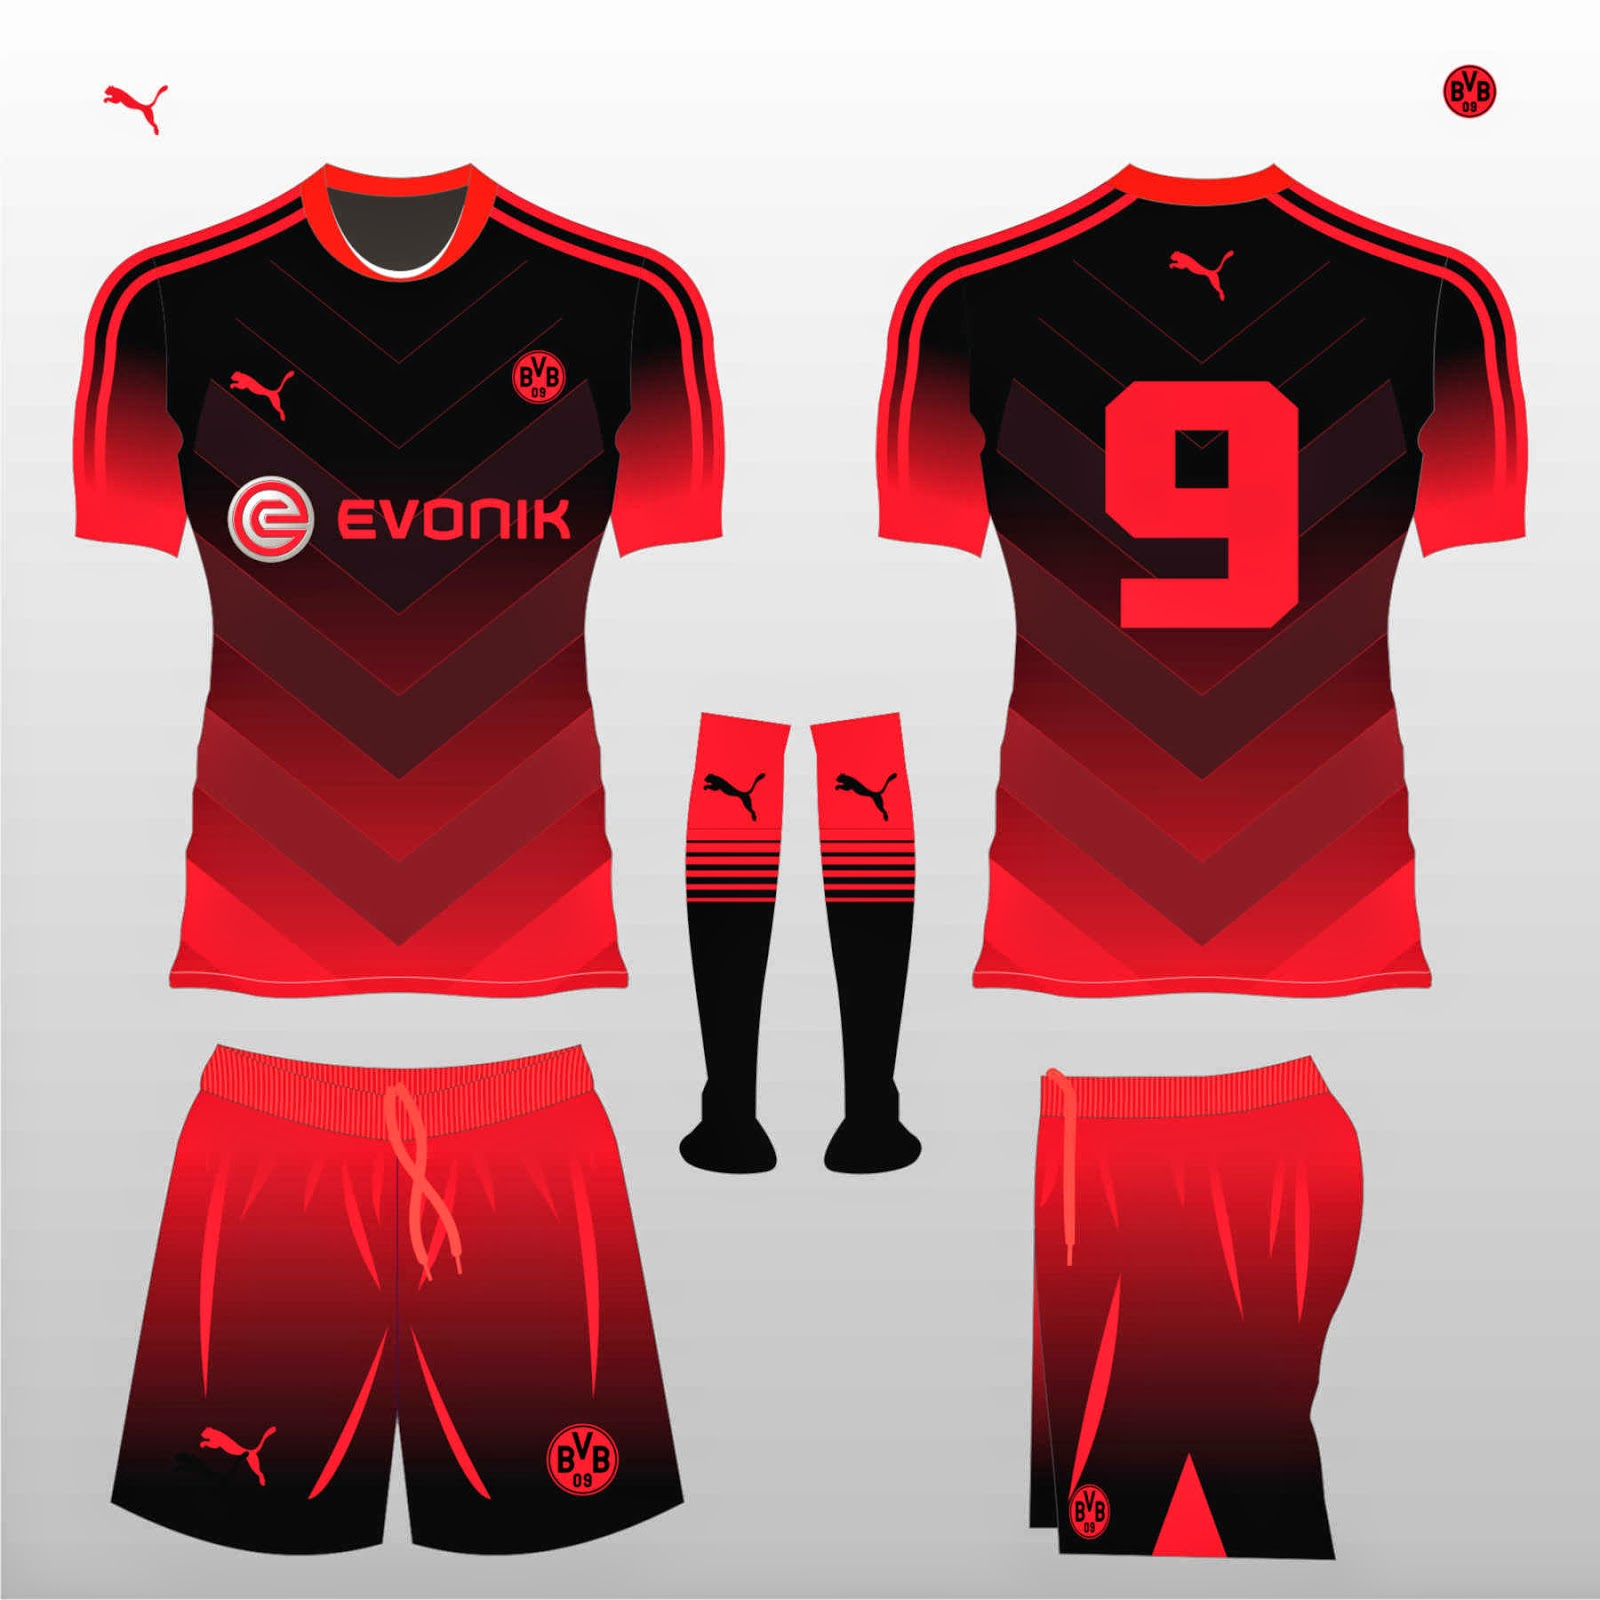 super popular 75c81 055ea Football Kit Design Master: Evonik Football kit design